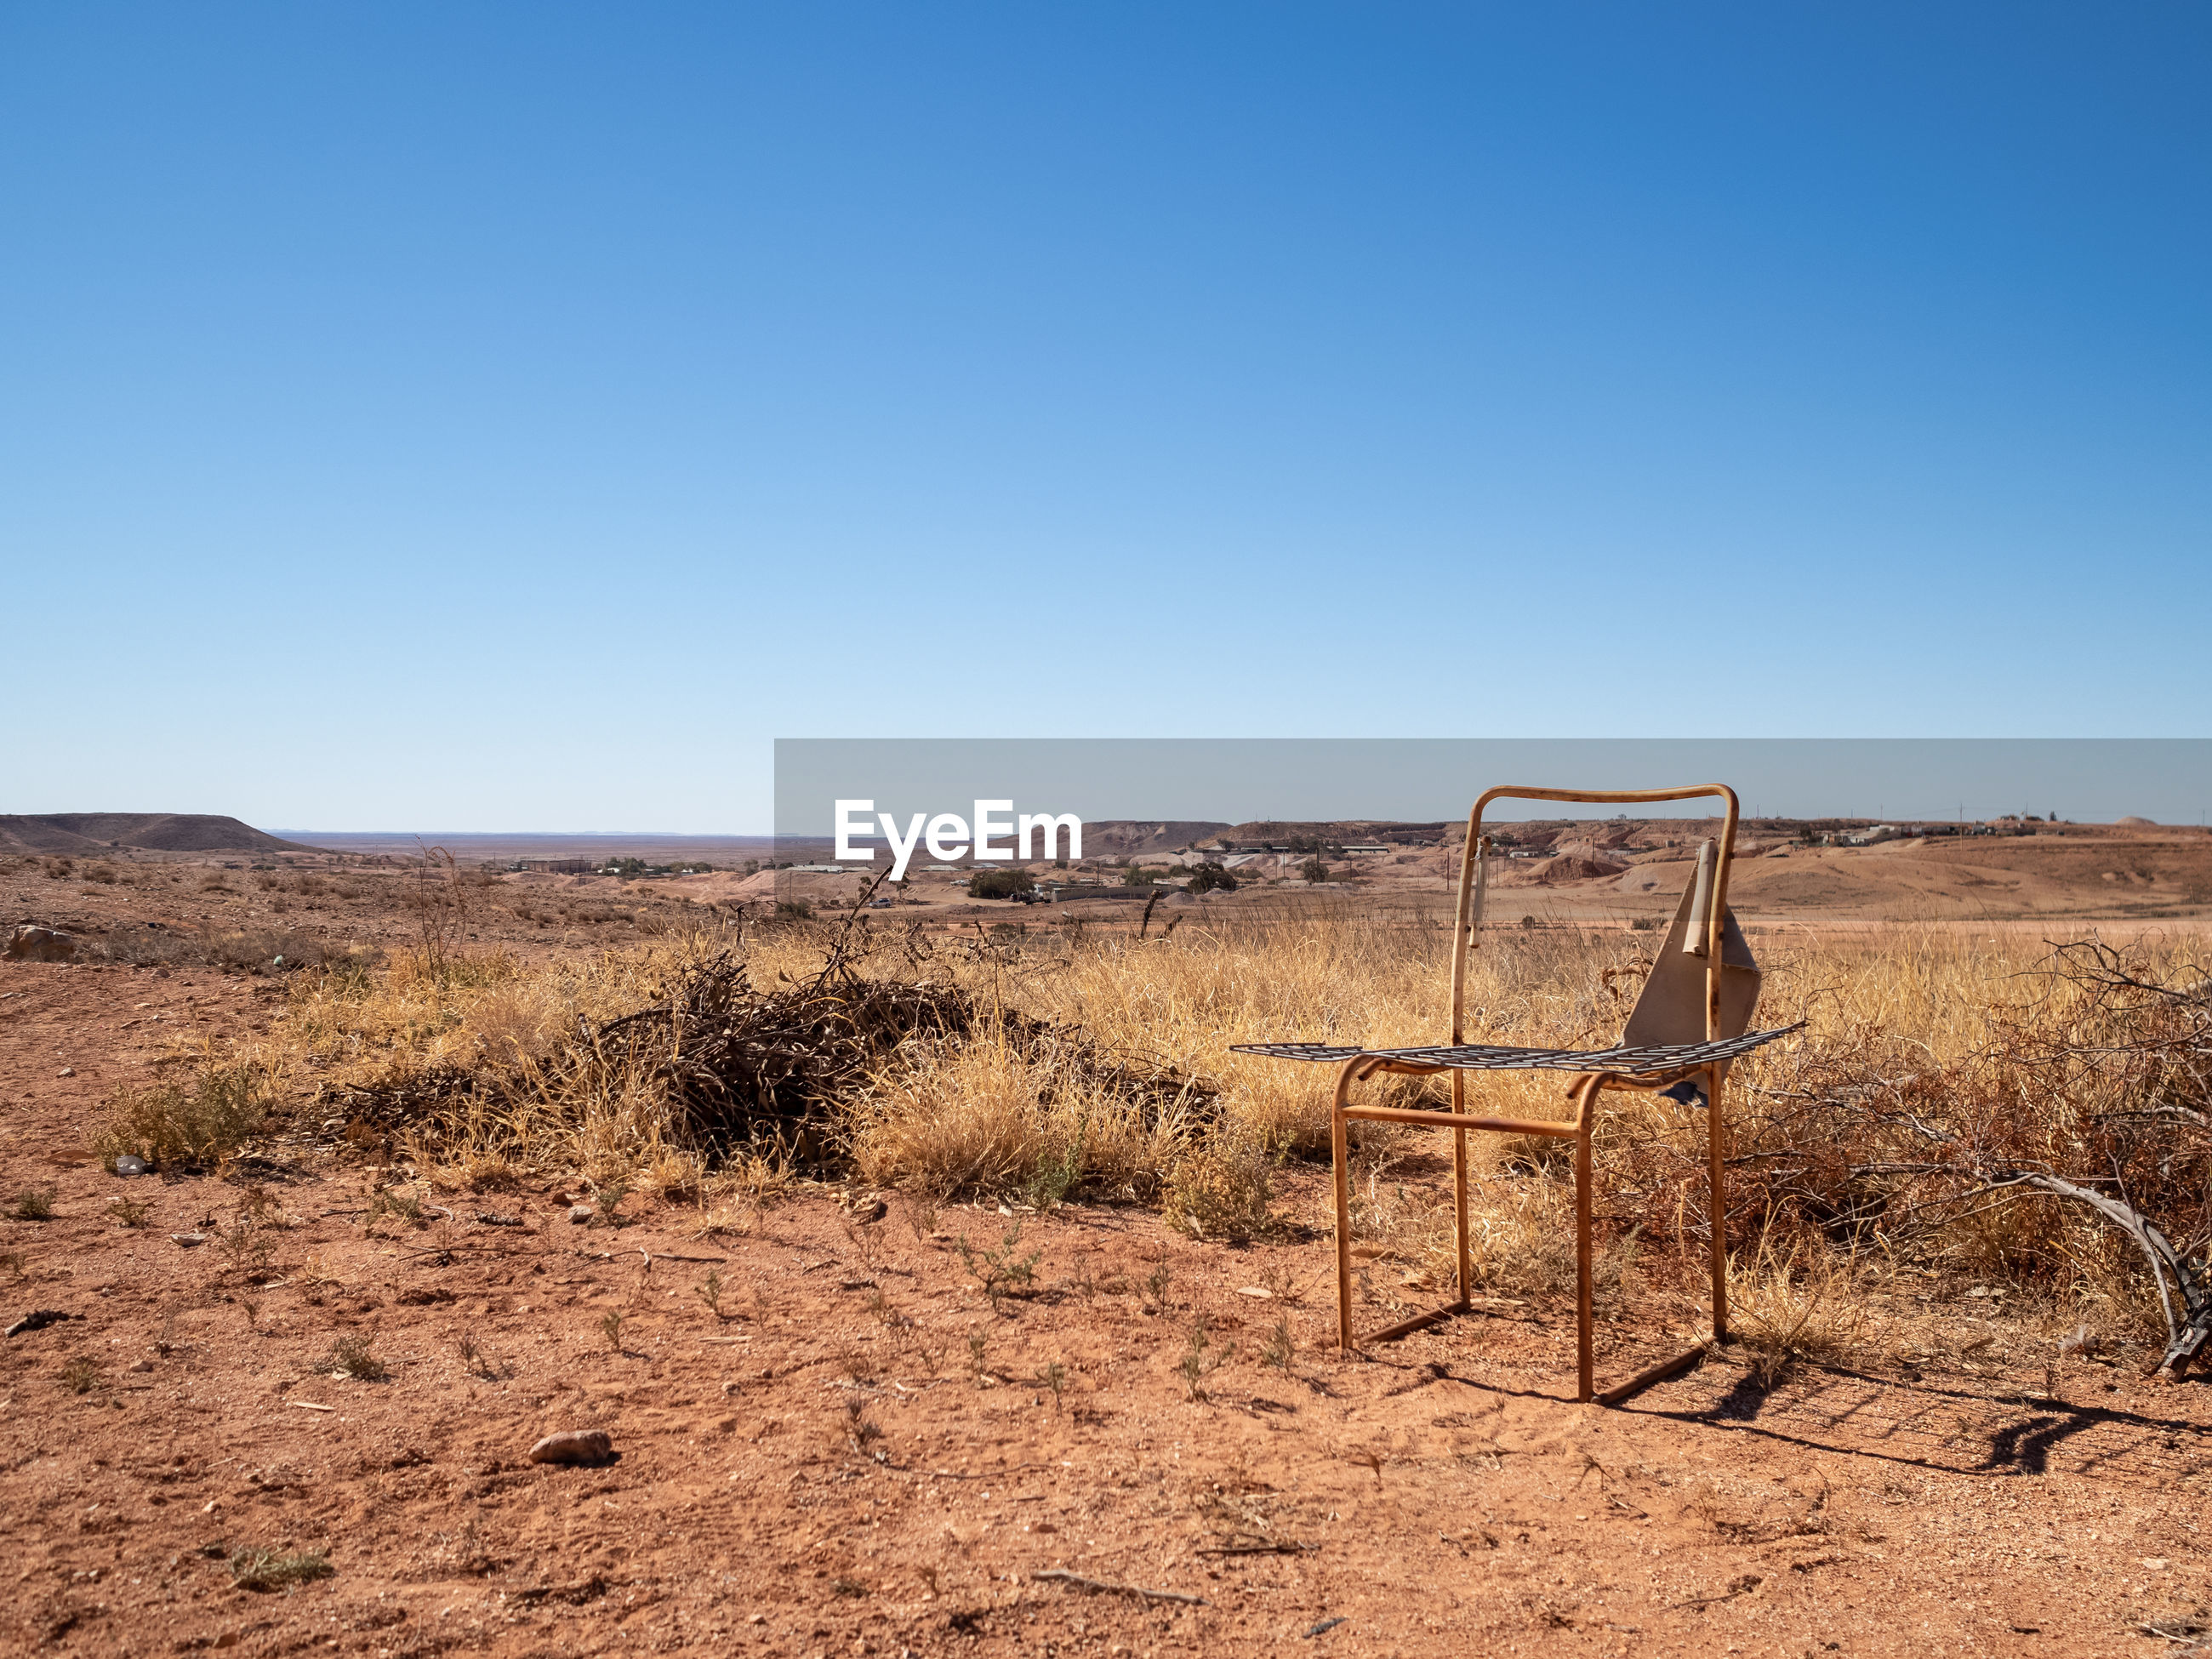 Scenic view of .ry arid landscape against clear blue sky with old seat frame in foreground